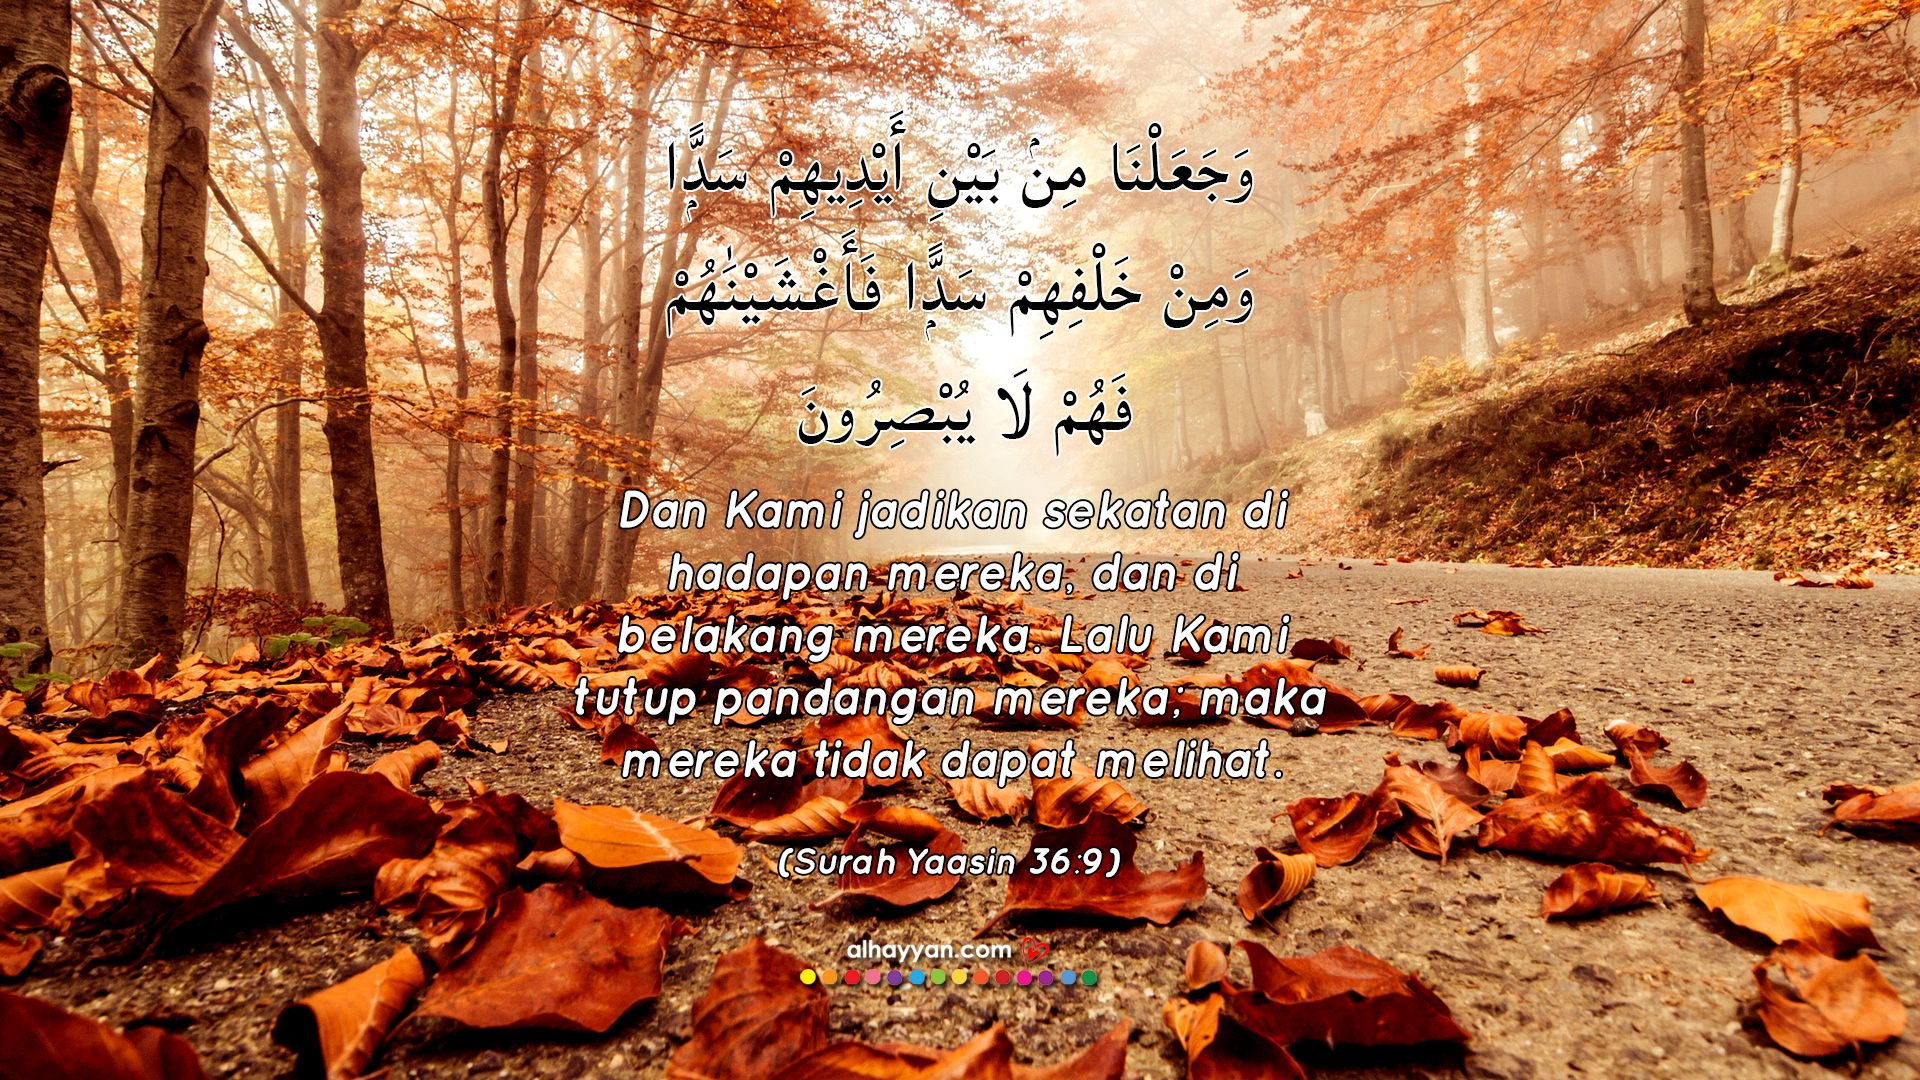 Discover The Beauty Of Islam Islamic Messages Islam Poster